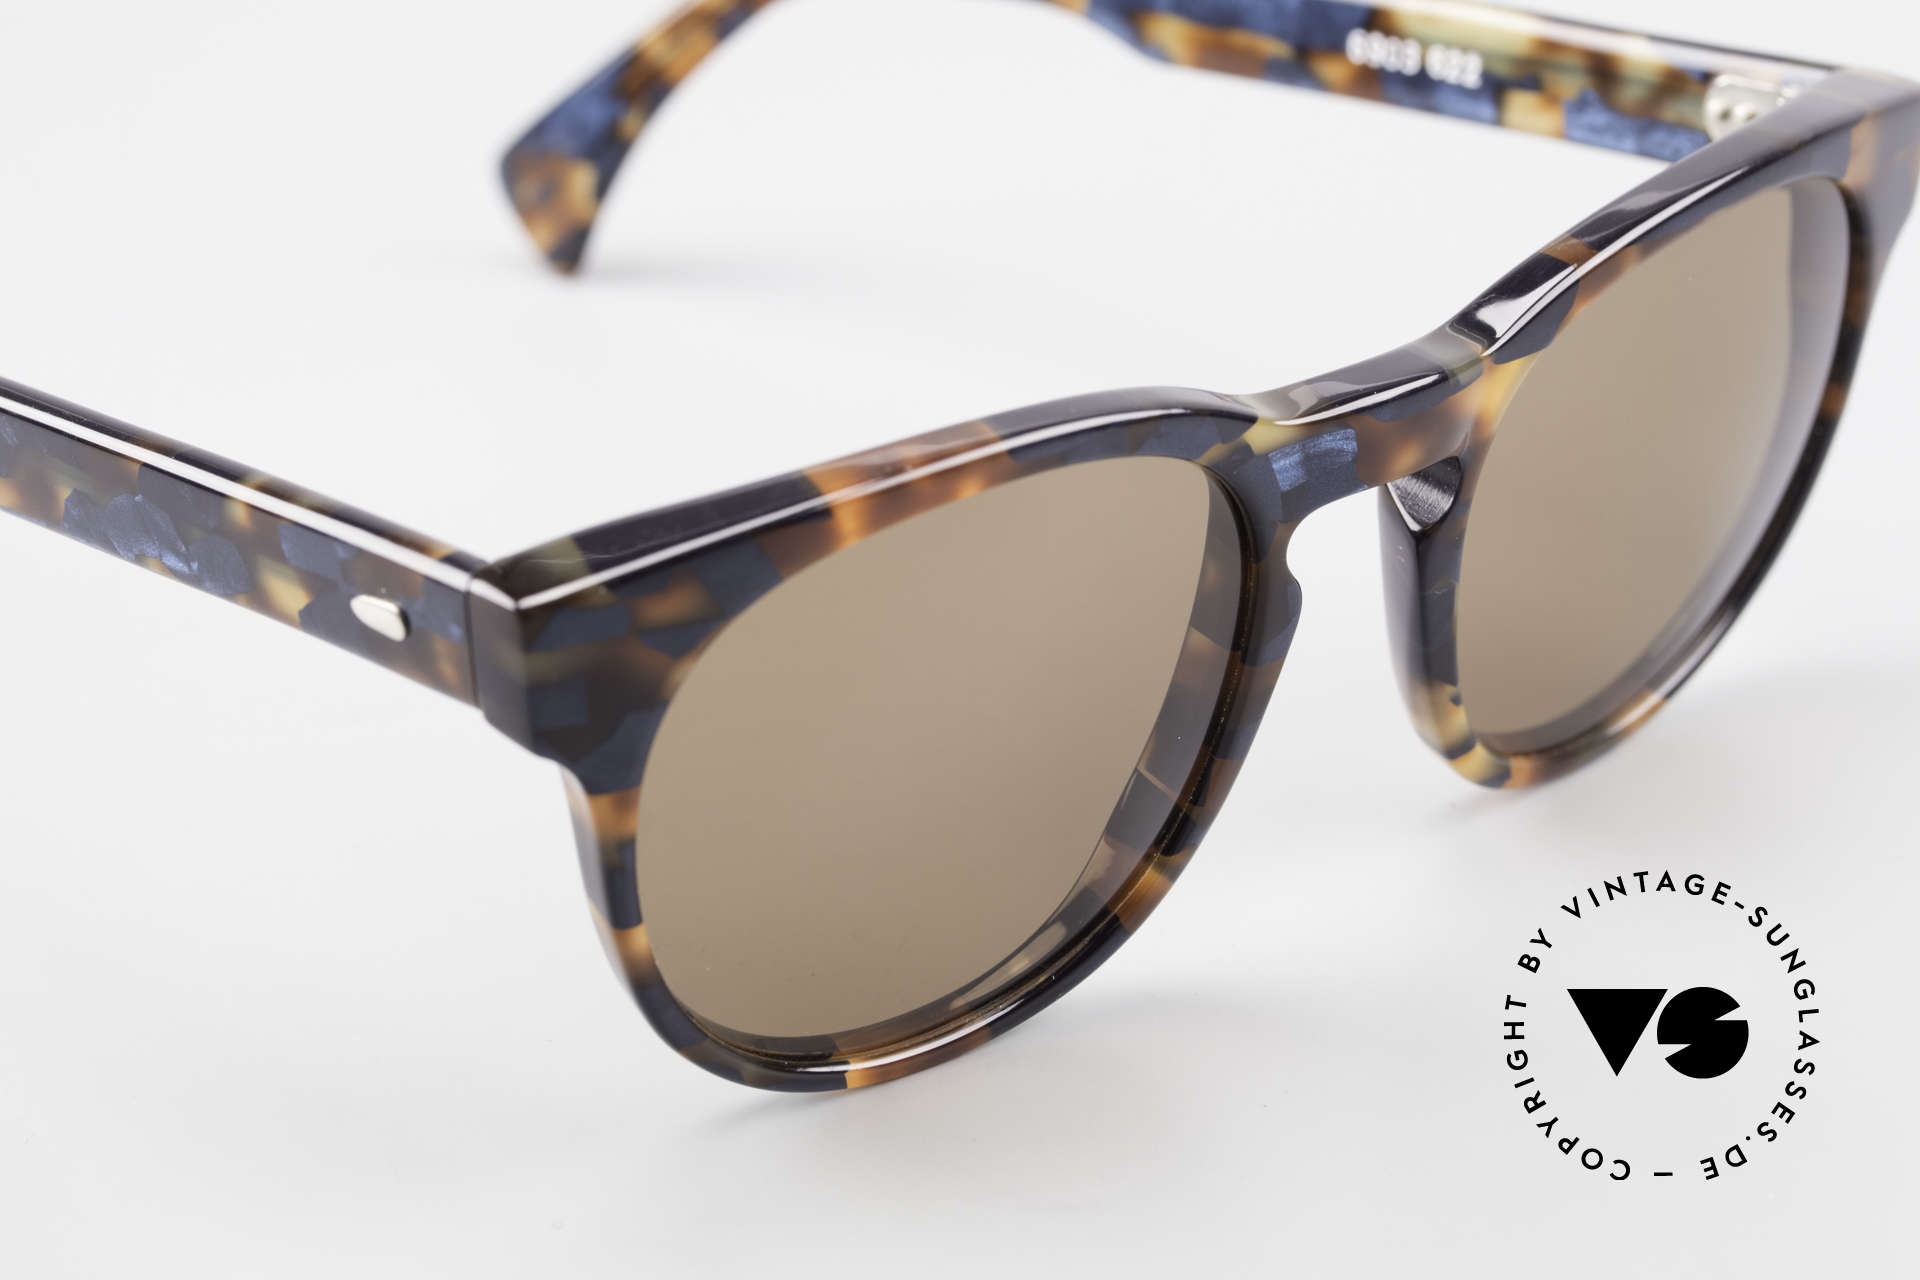 Alain Mikli 6903 / 622 XS Panto Frame Marbled Brown, never worn (like all our vintage Alain Mikli specs), Made for Men and Women